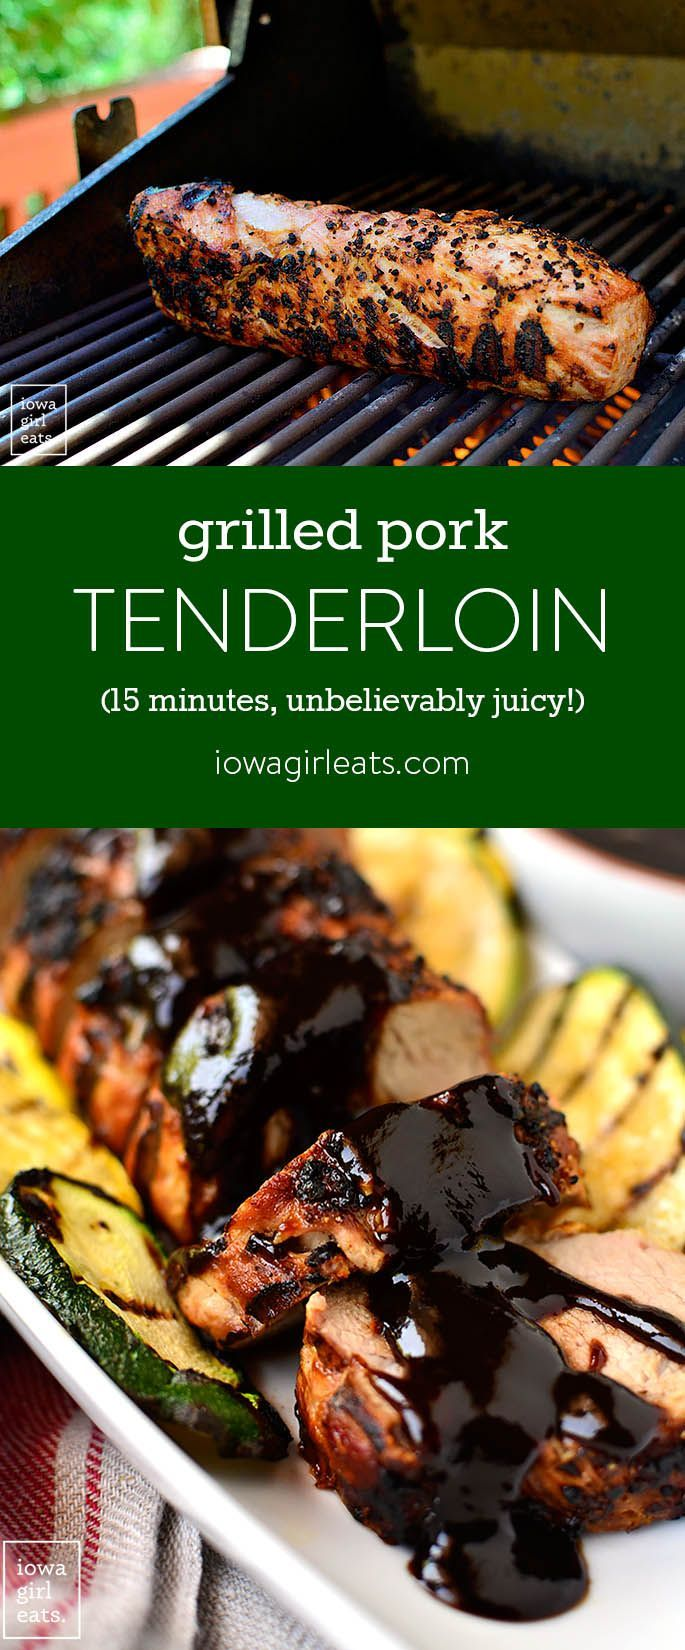 I'm sharing my method for the most unbelievably juicy grilled pork tenderloin, which cooks in under 15 minutes. A filling and healthy summer dinner!| iowagirleats.com